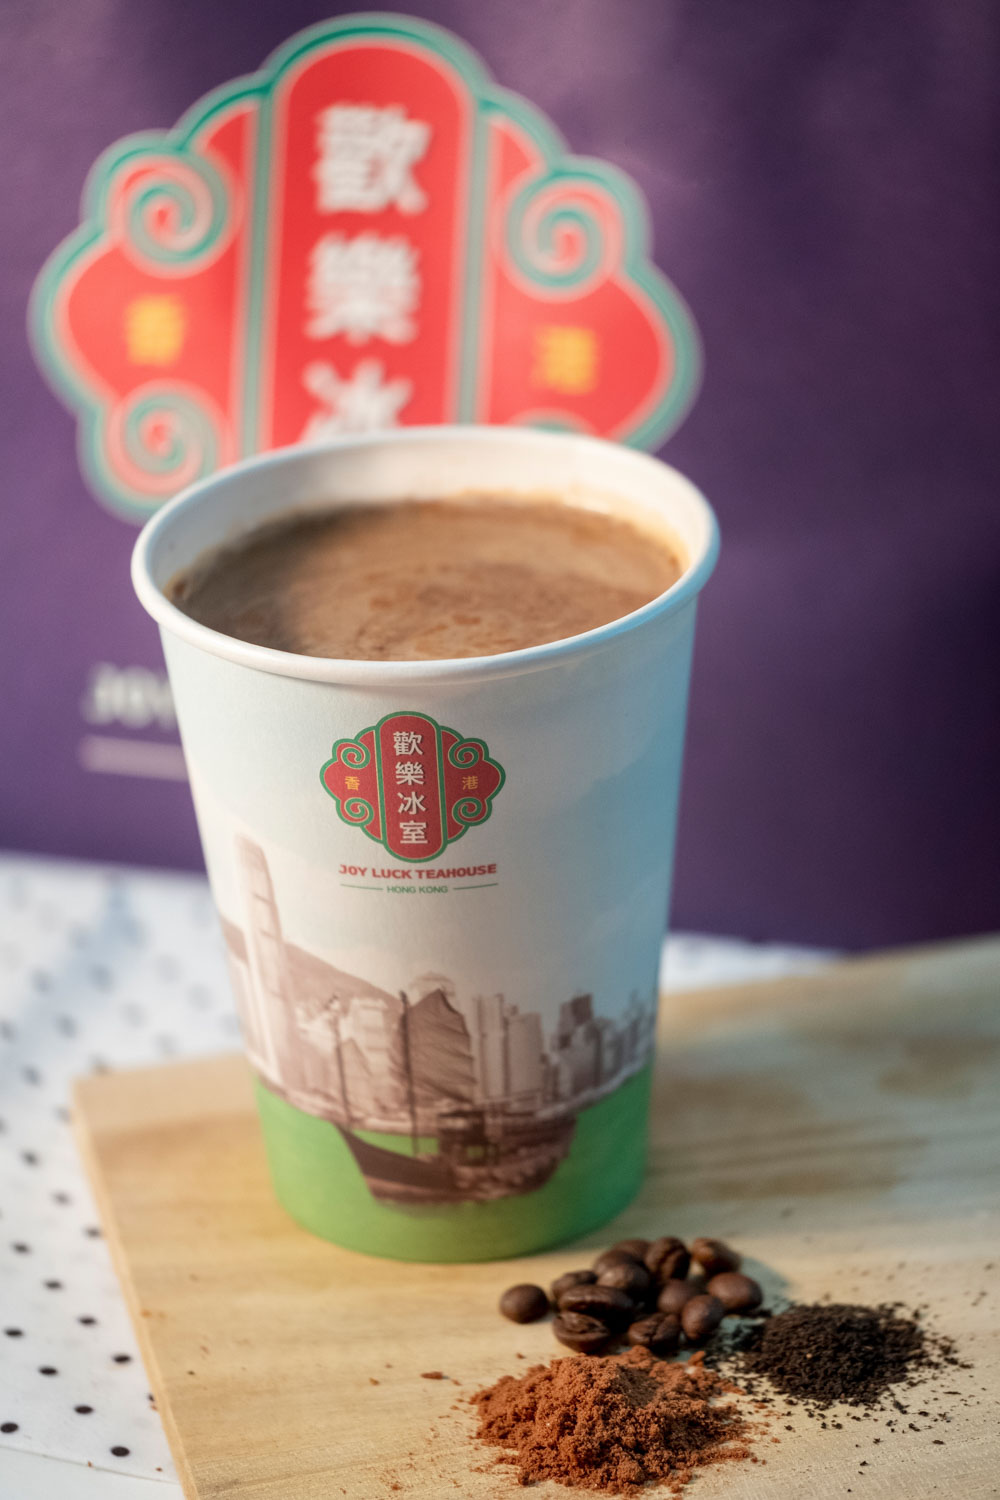 joy luck teahouse woodlands - hot milo yin yang